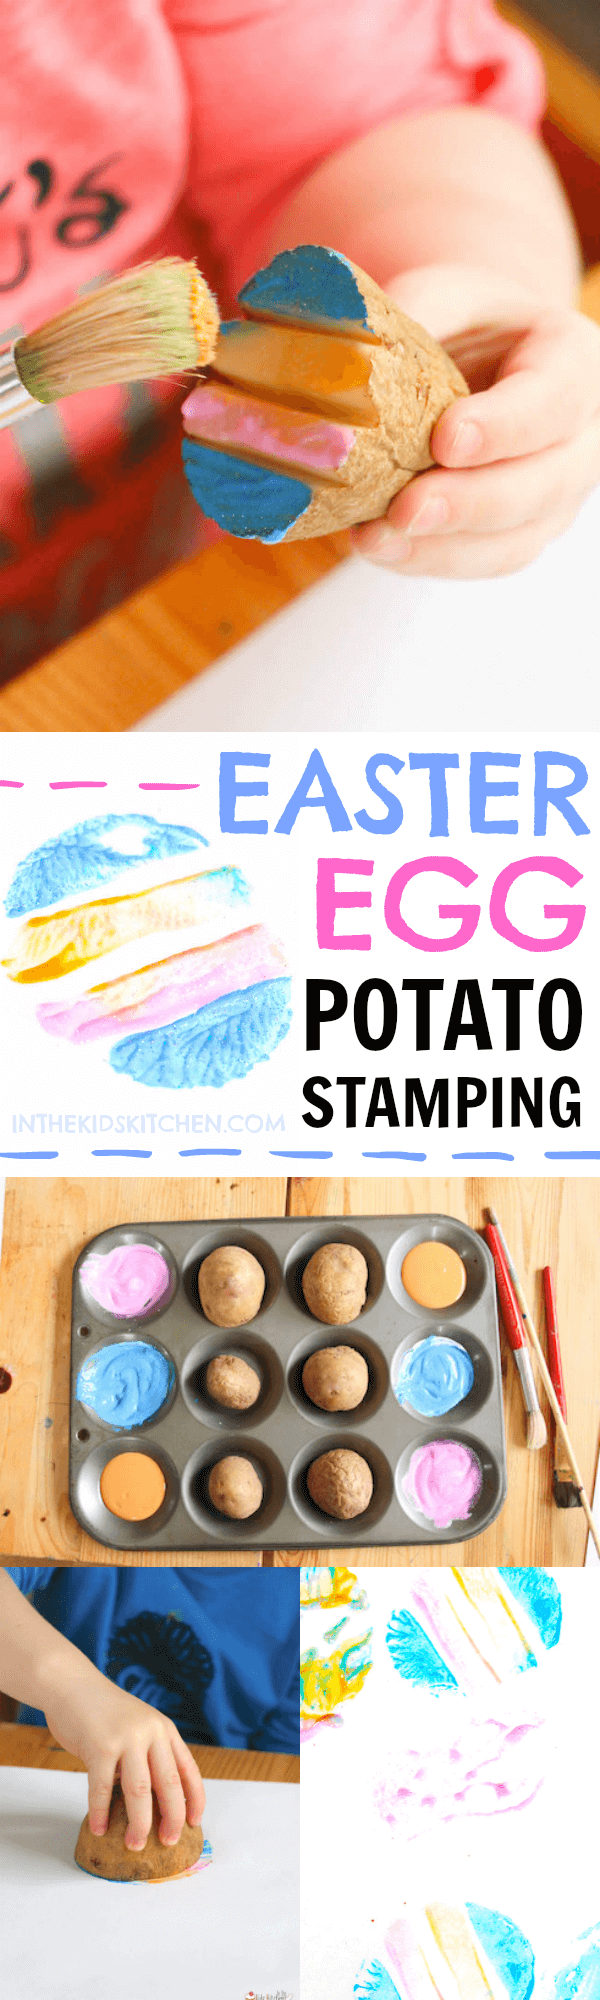 Create vibrant holiday decorations with this easy Easter Egg Potato Stamping kids craft! Free printable template included for foolproof designs.